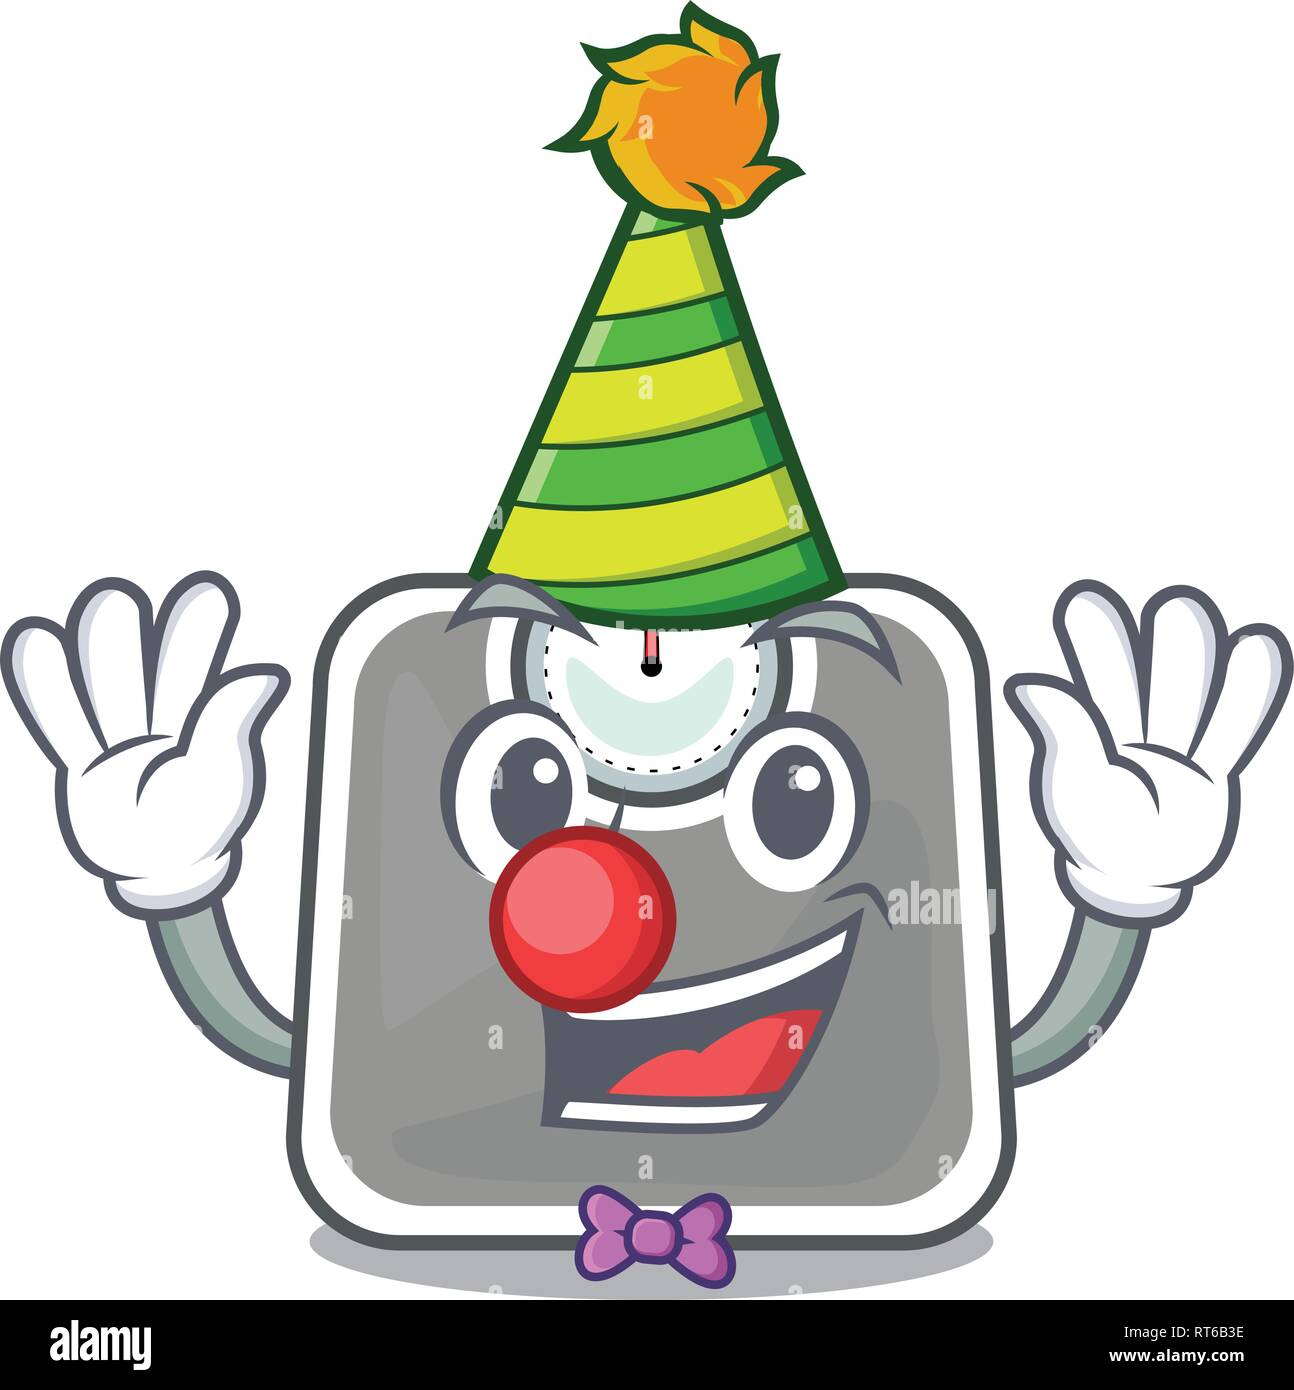 Clown weight scala isolated with in cartoons - Stock Image